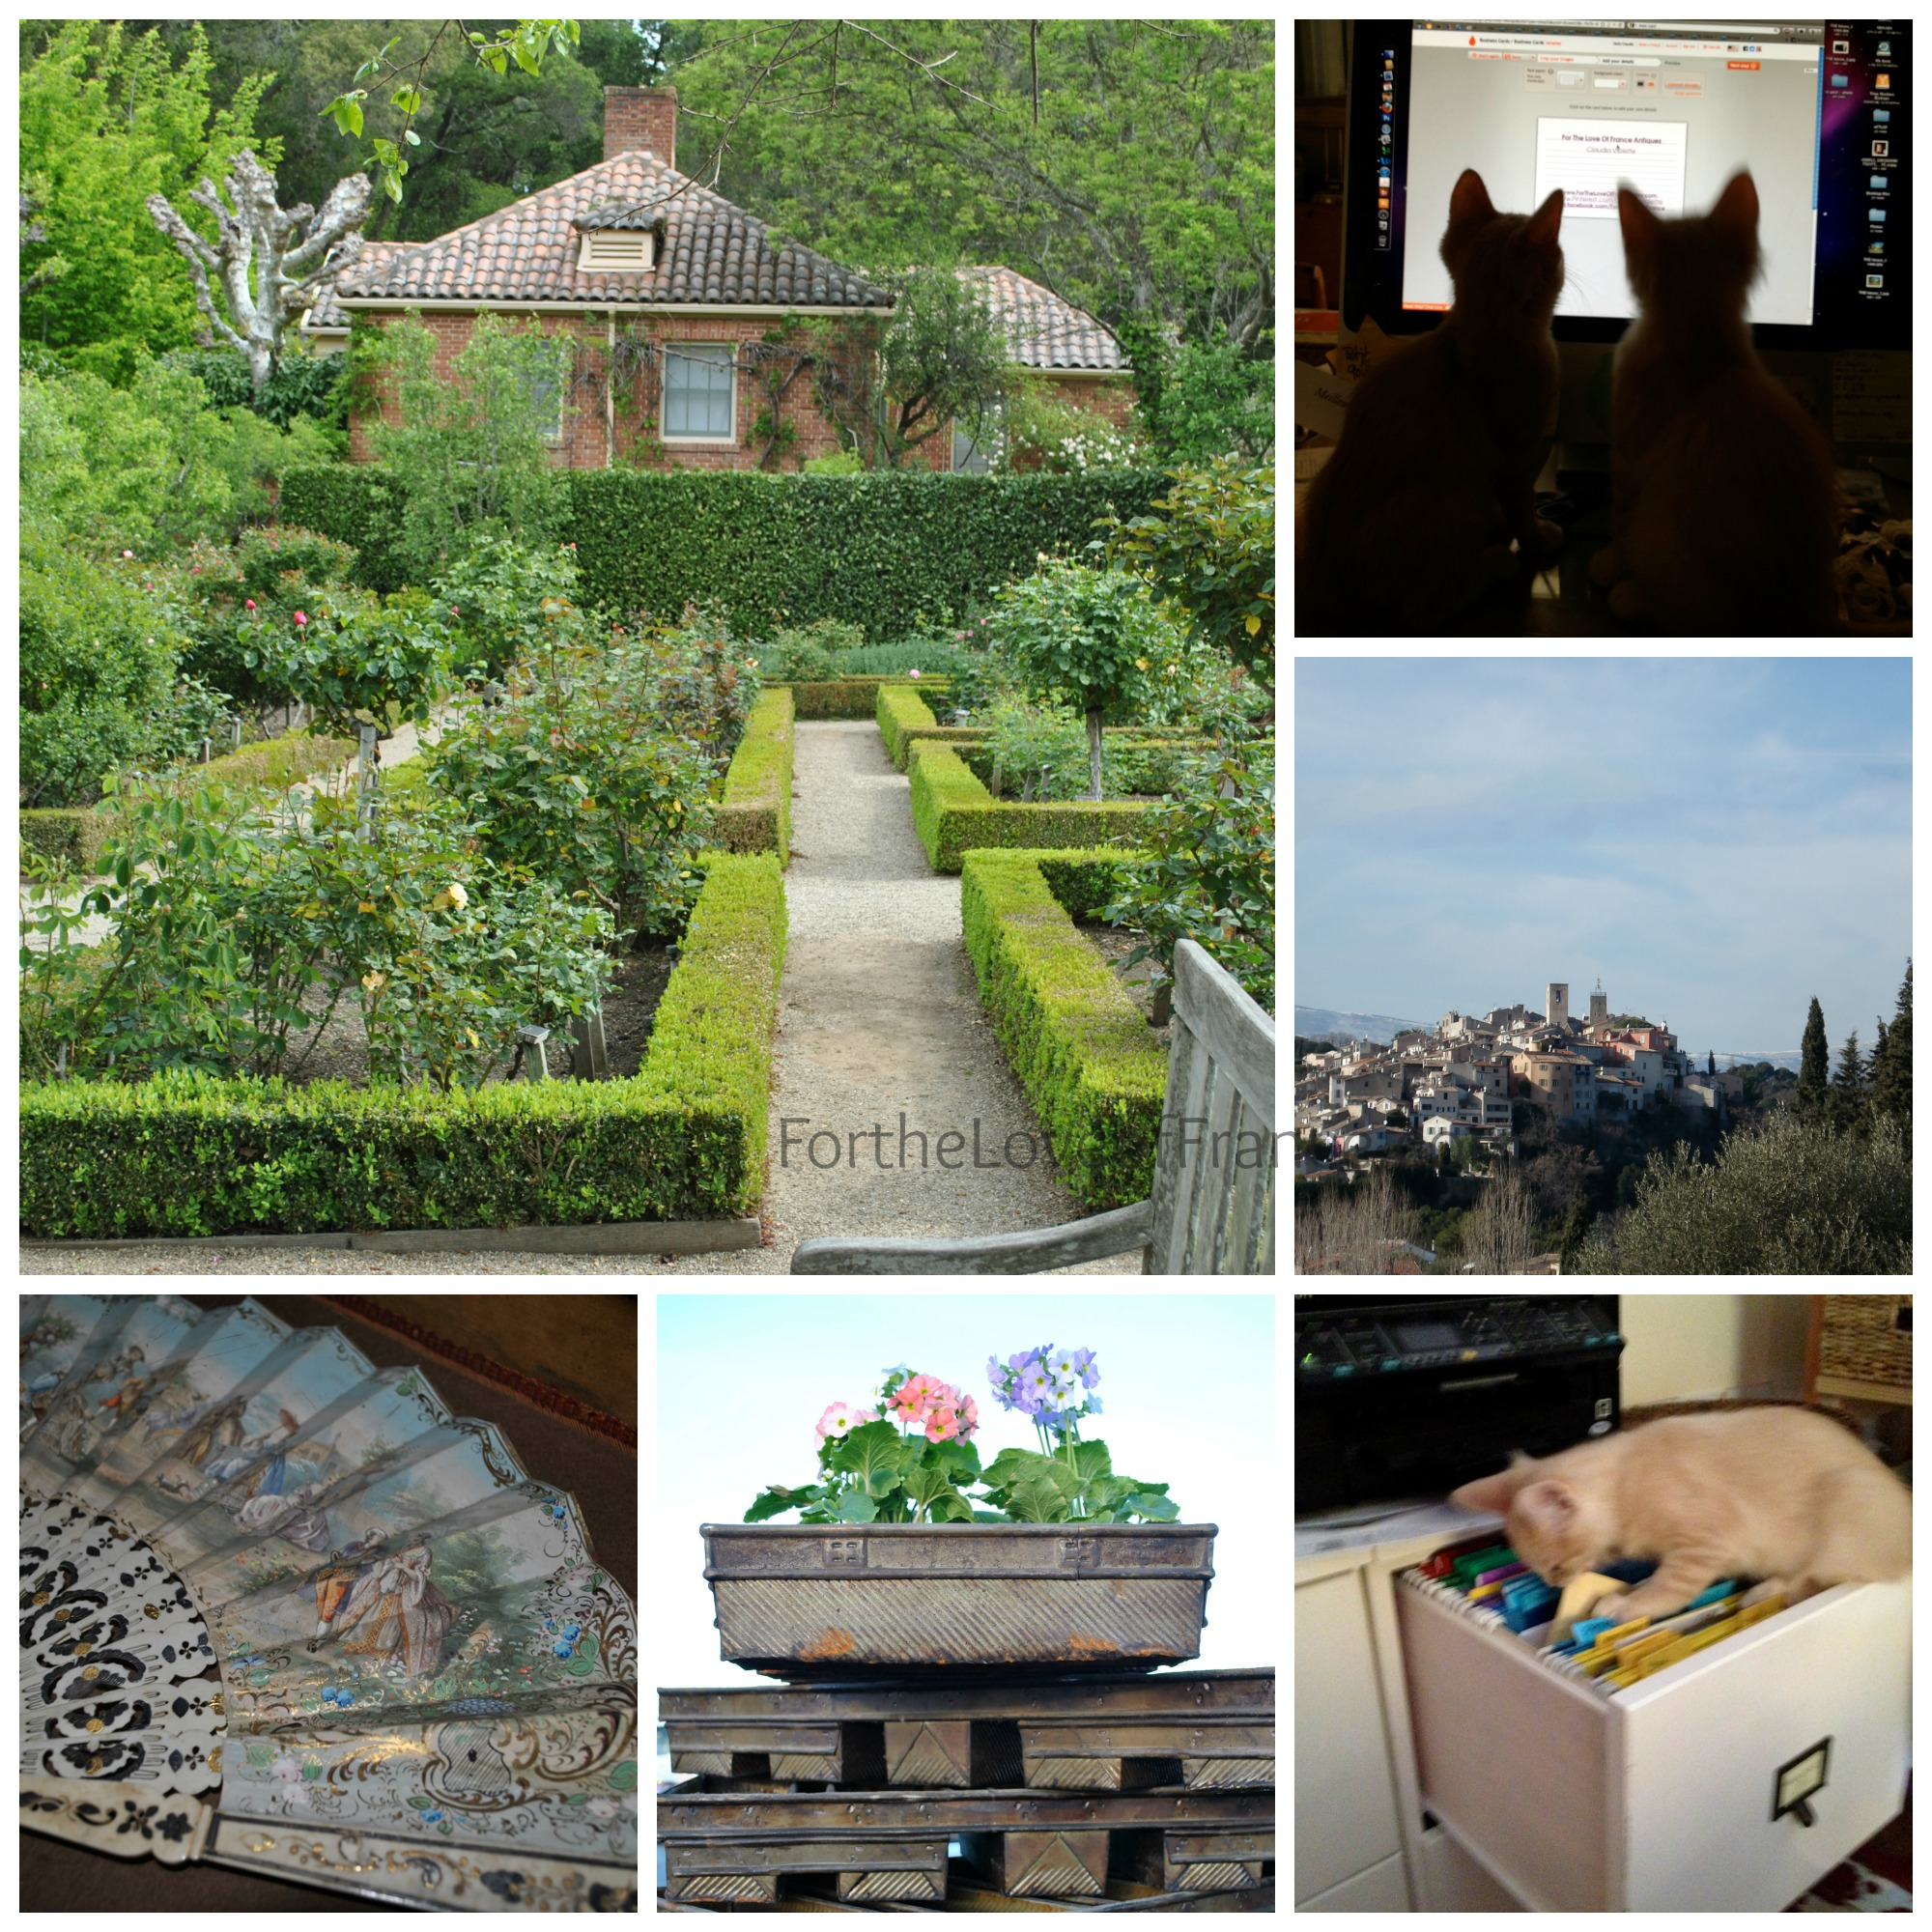 Collage of Georgian Brick Garden Home | Antique French Fan | Two Kittens, the Assistants | Vintage French Commercial Bread Pans | Lourmarin France